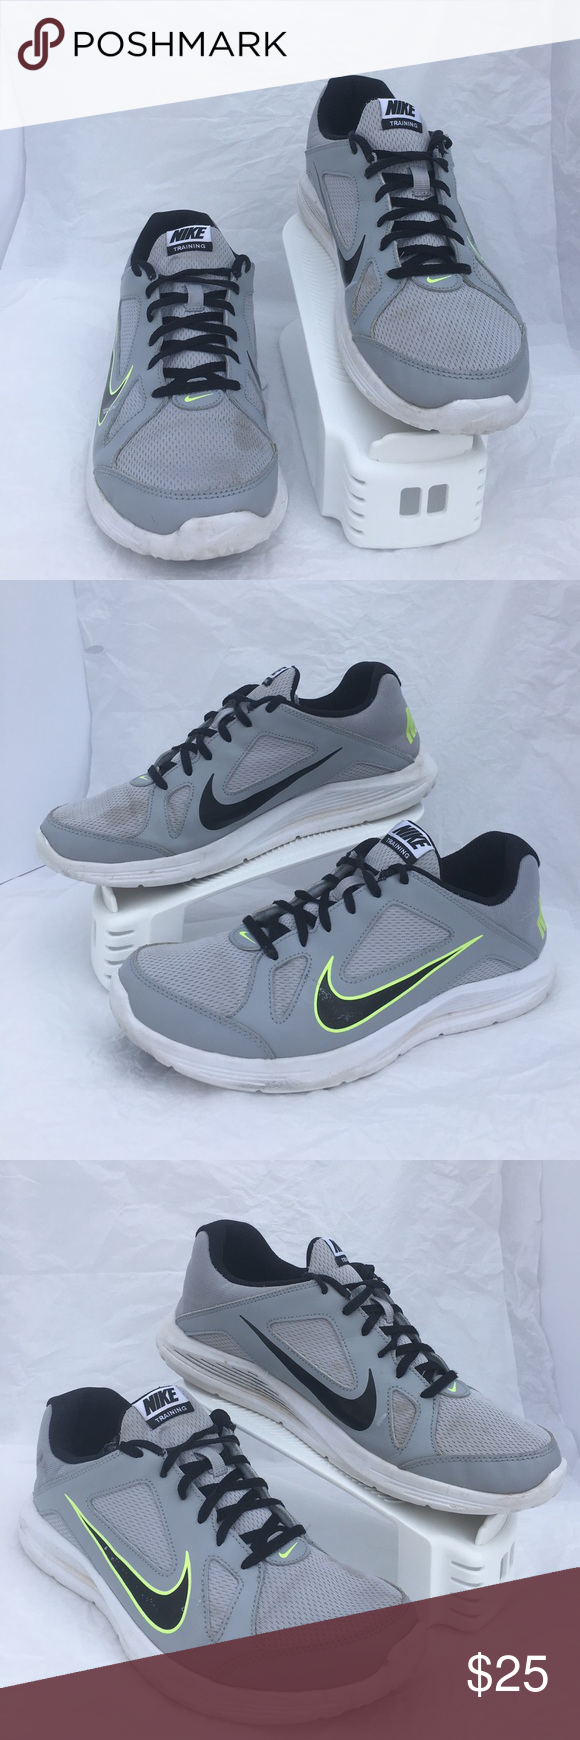 Nike Trainer Running Shoes Shoes Clothes Design Nike Trainers